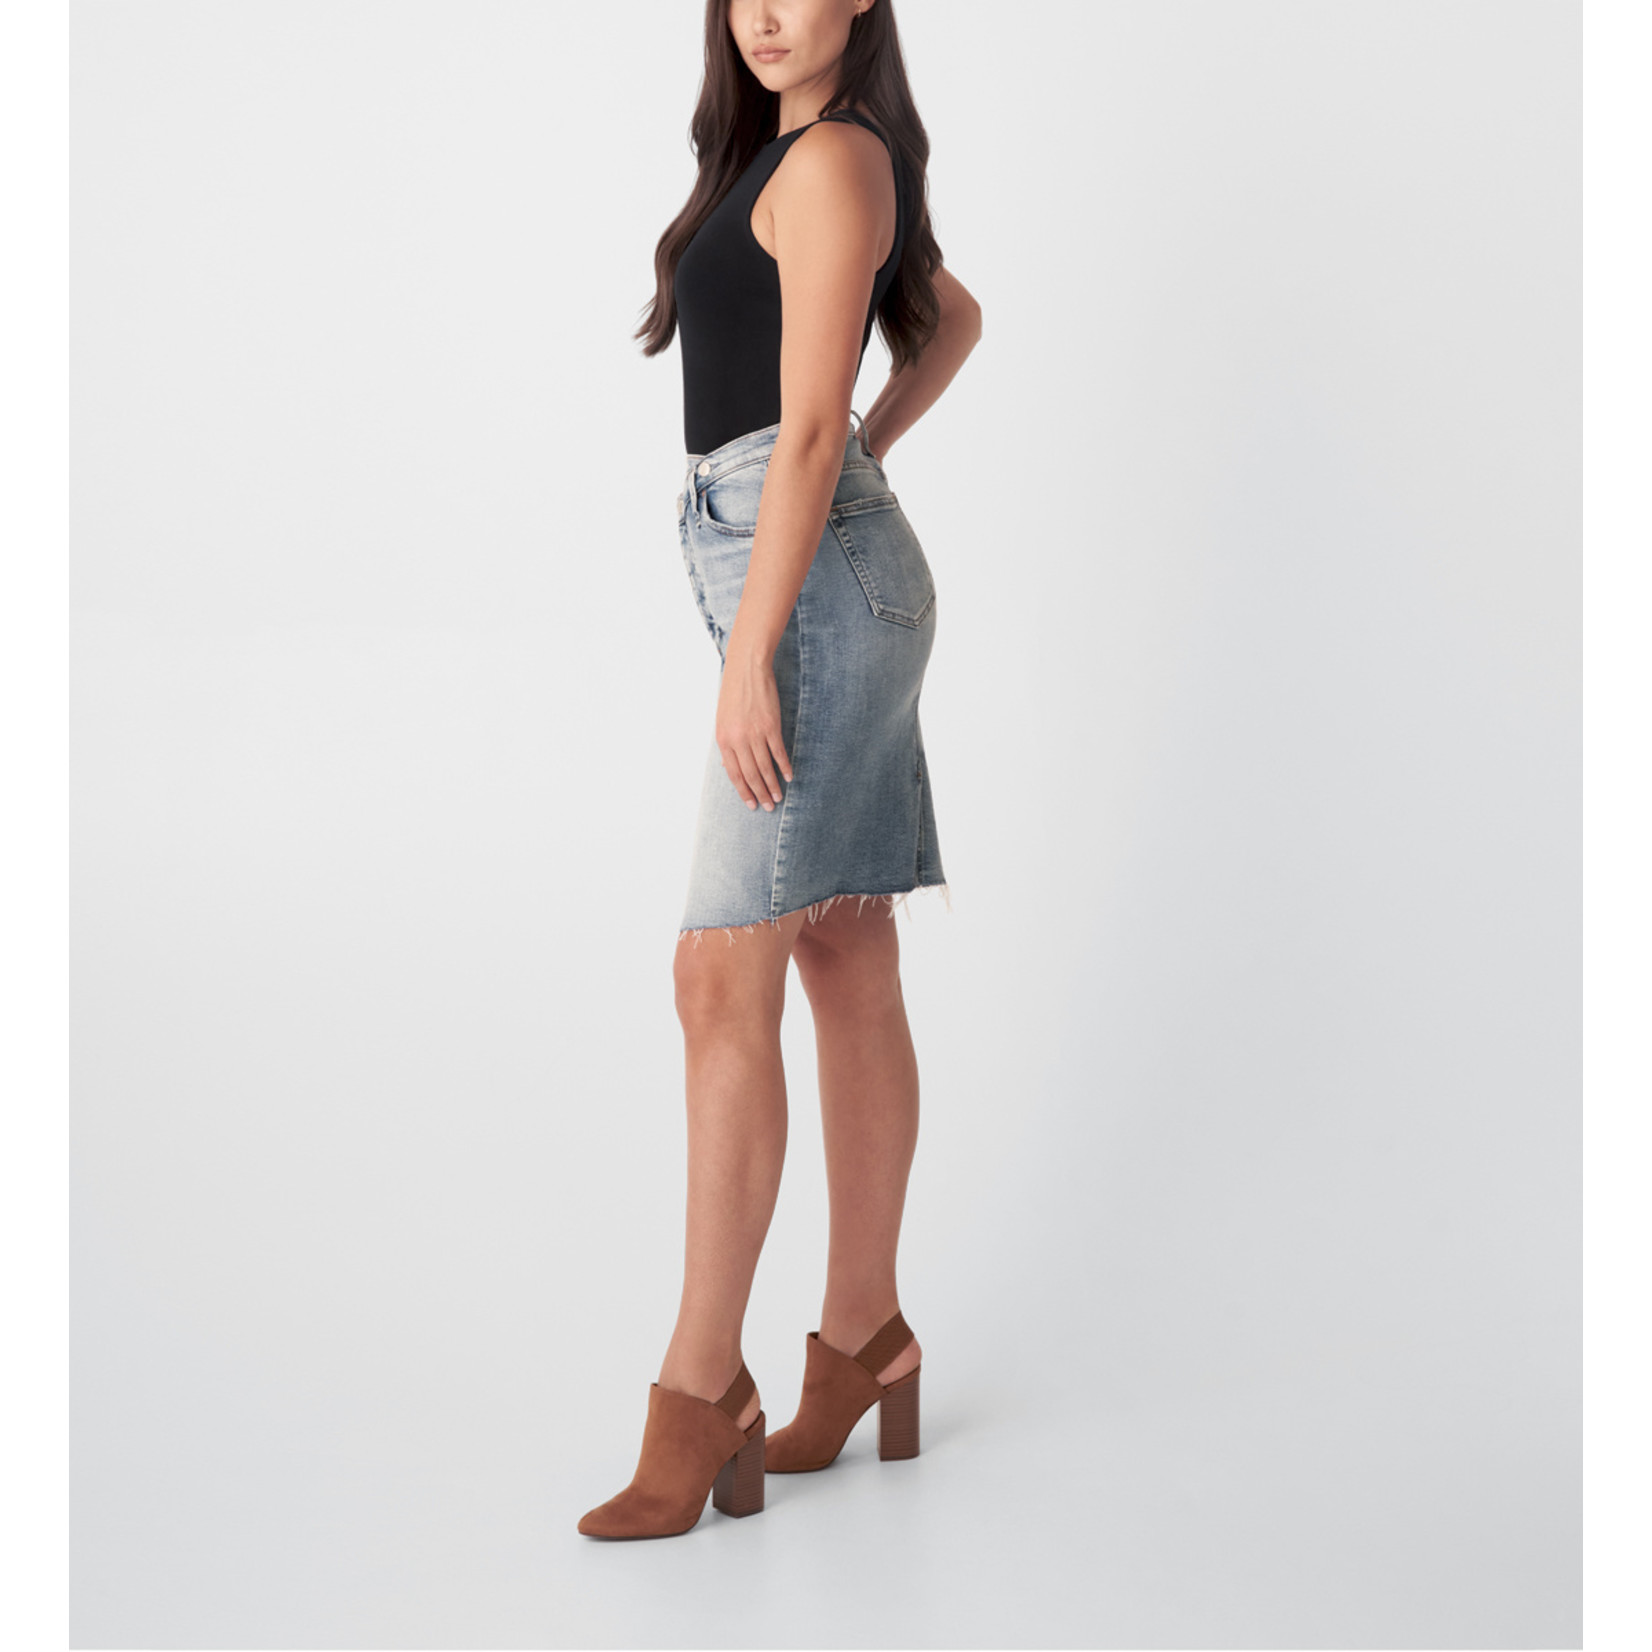 Silver Jeans HIGHLY DESIRABLE HIGH RISE PENCIL SKIRT